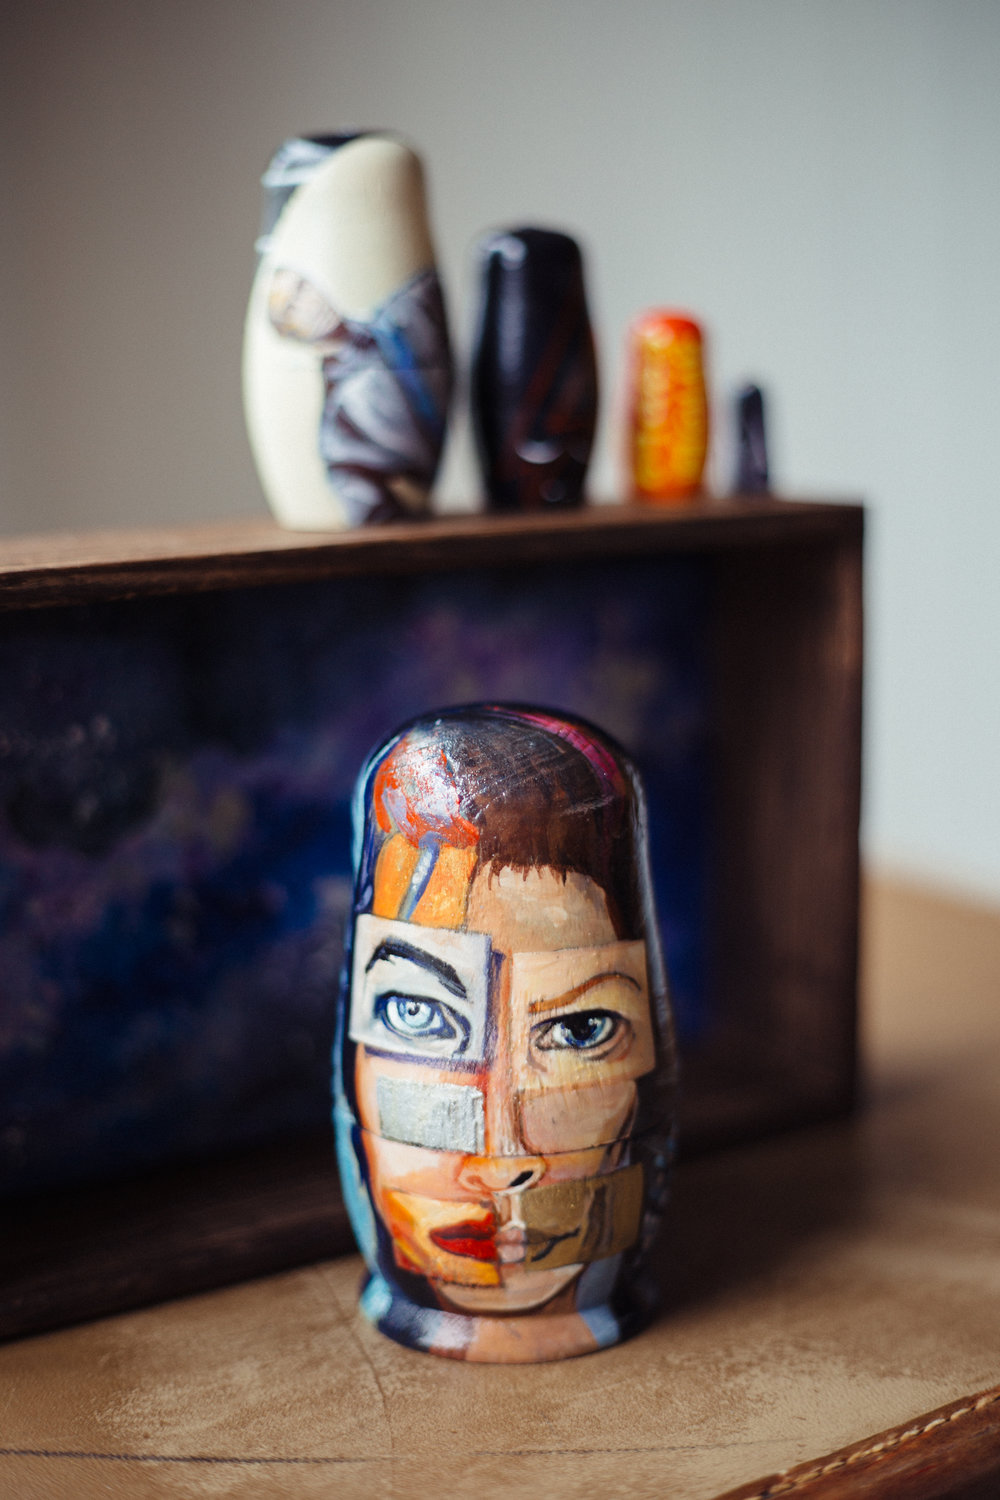 Rare Bowie B sides Matryoshka nesting dolls, acrylic on wood by  Anjeanette Illustration